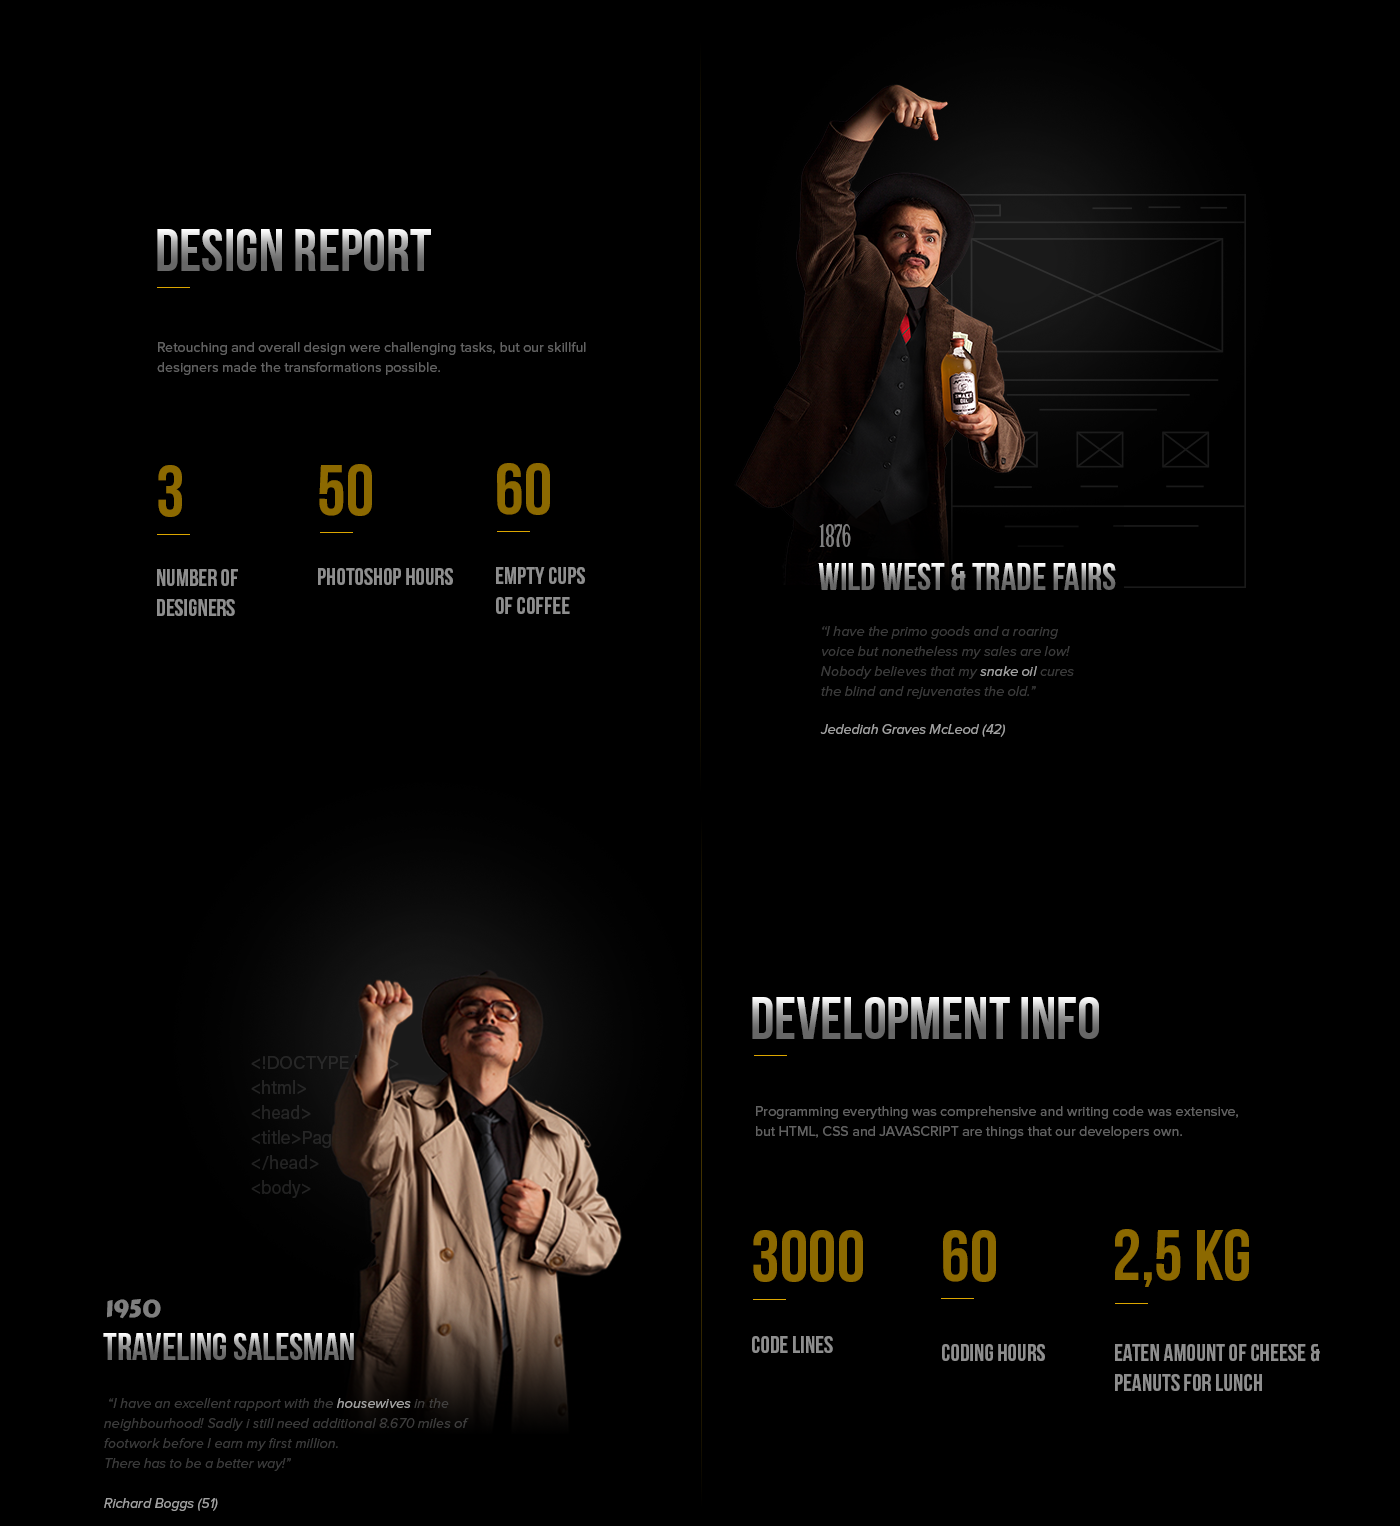 webshop Shopping salesman design collage Photography  black infographic